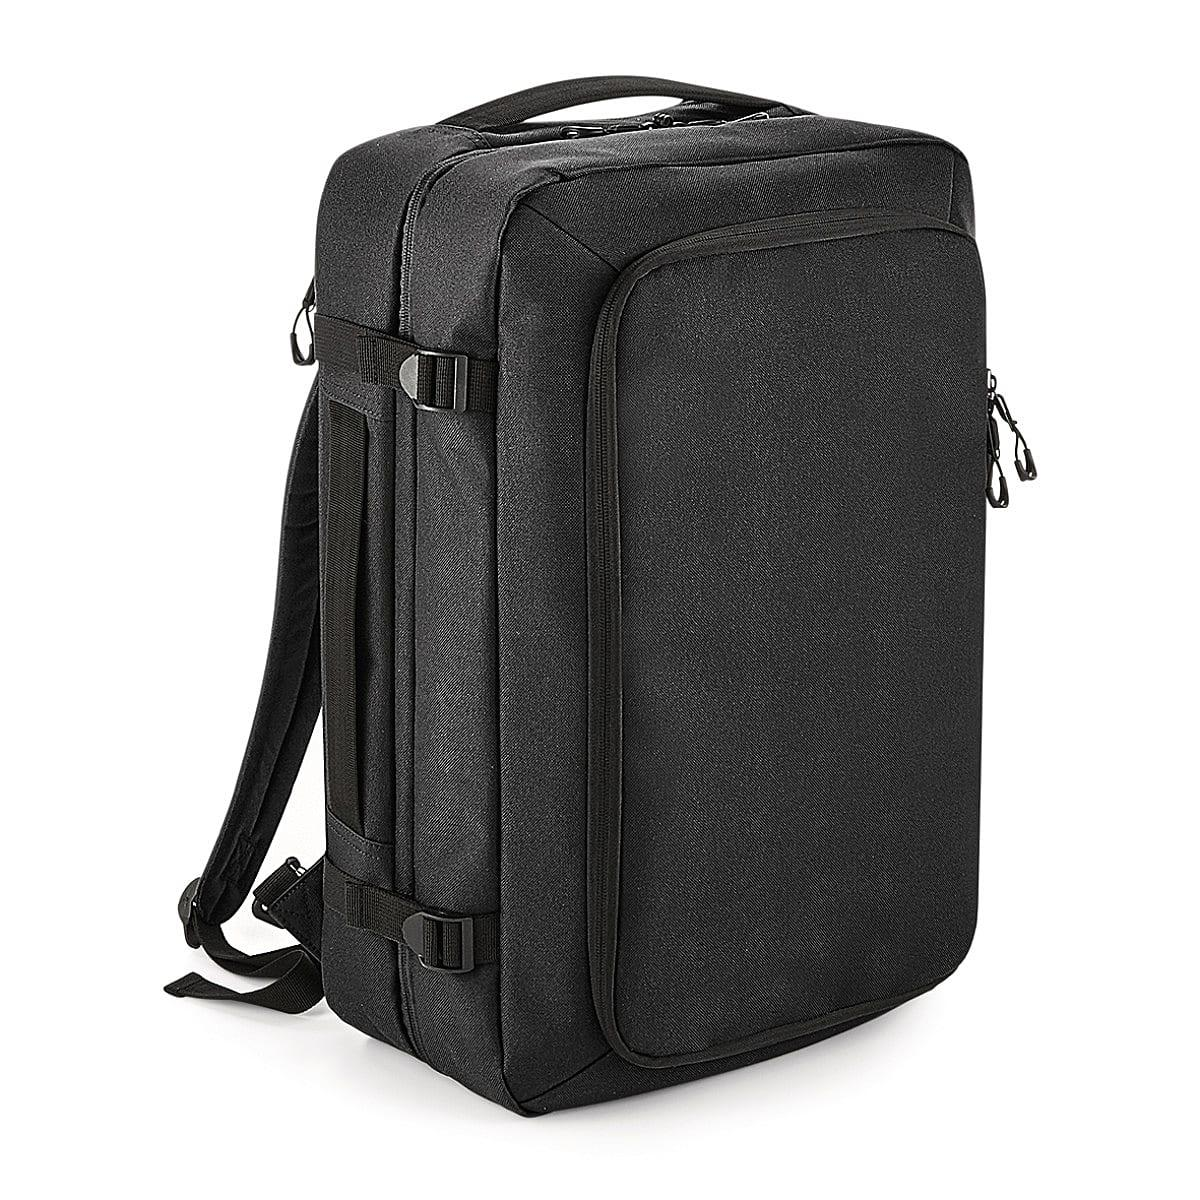 Bagbase Escape Carry On Backpack in Black (Product Code: BG480)